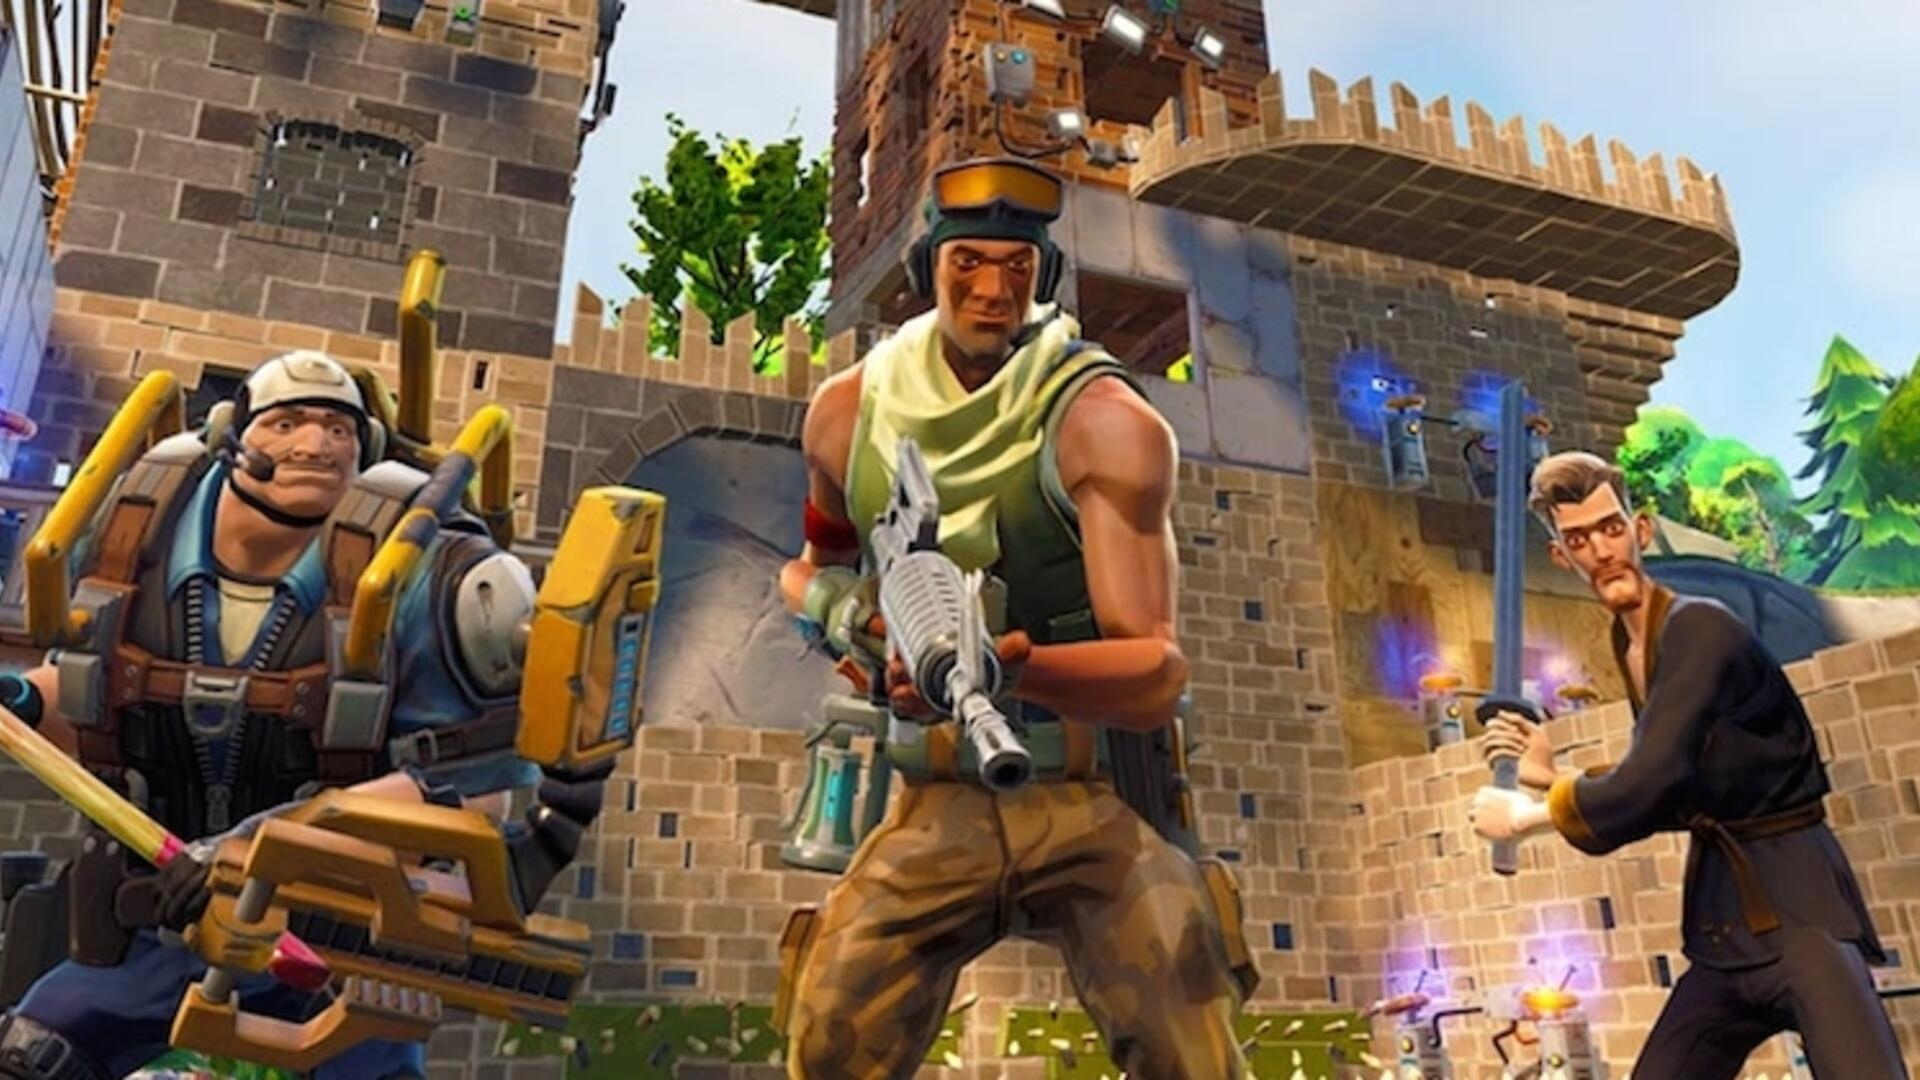 Fortnite for the Switch Has Cross-Play for Every Version of the Game Except PS4